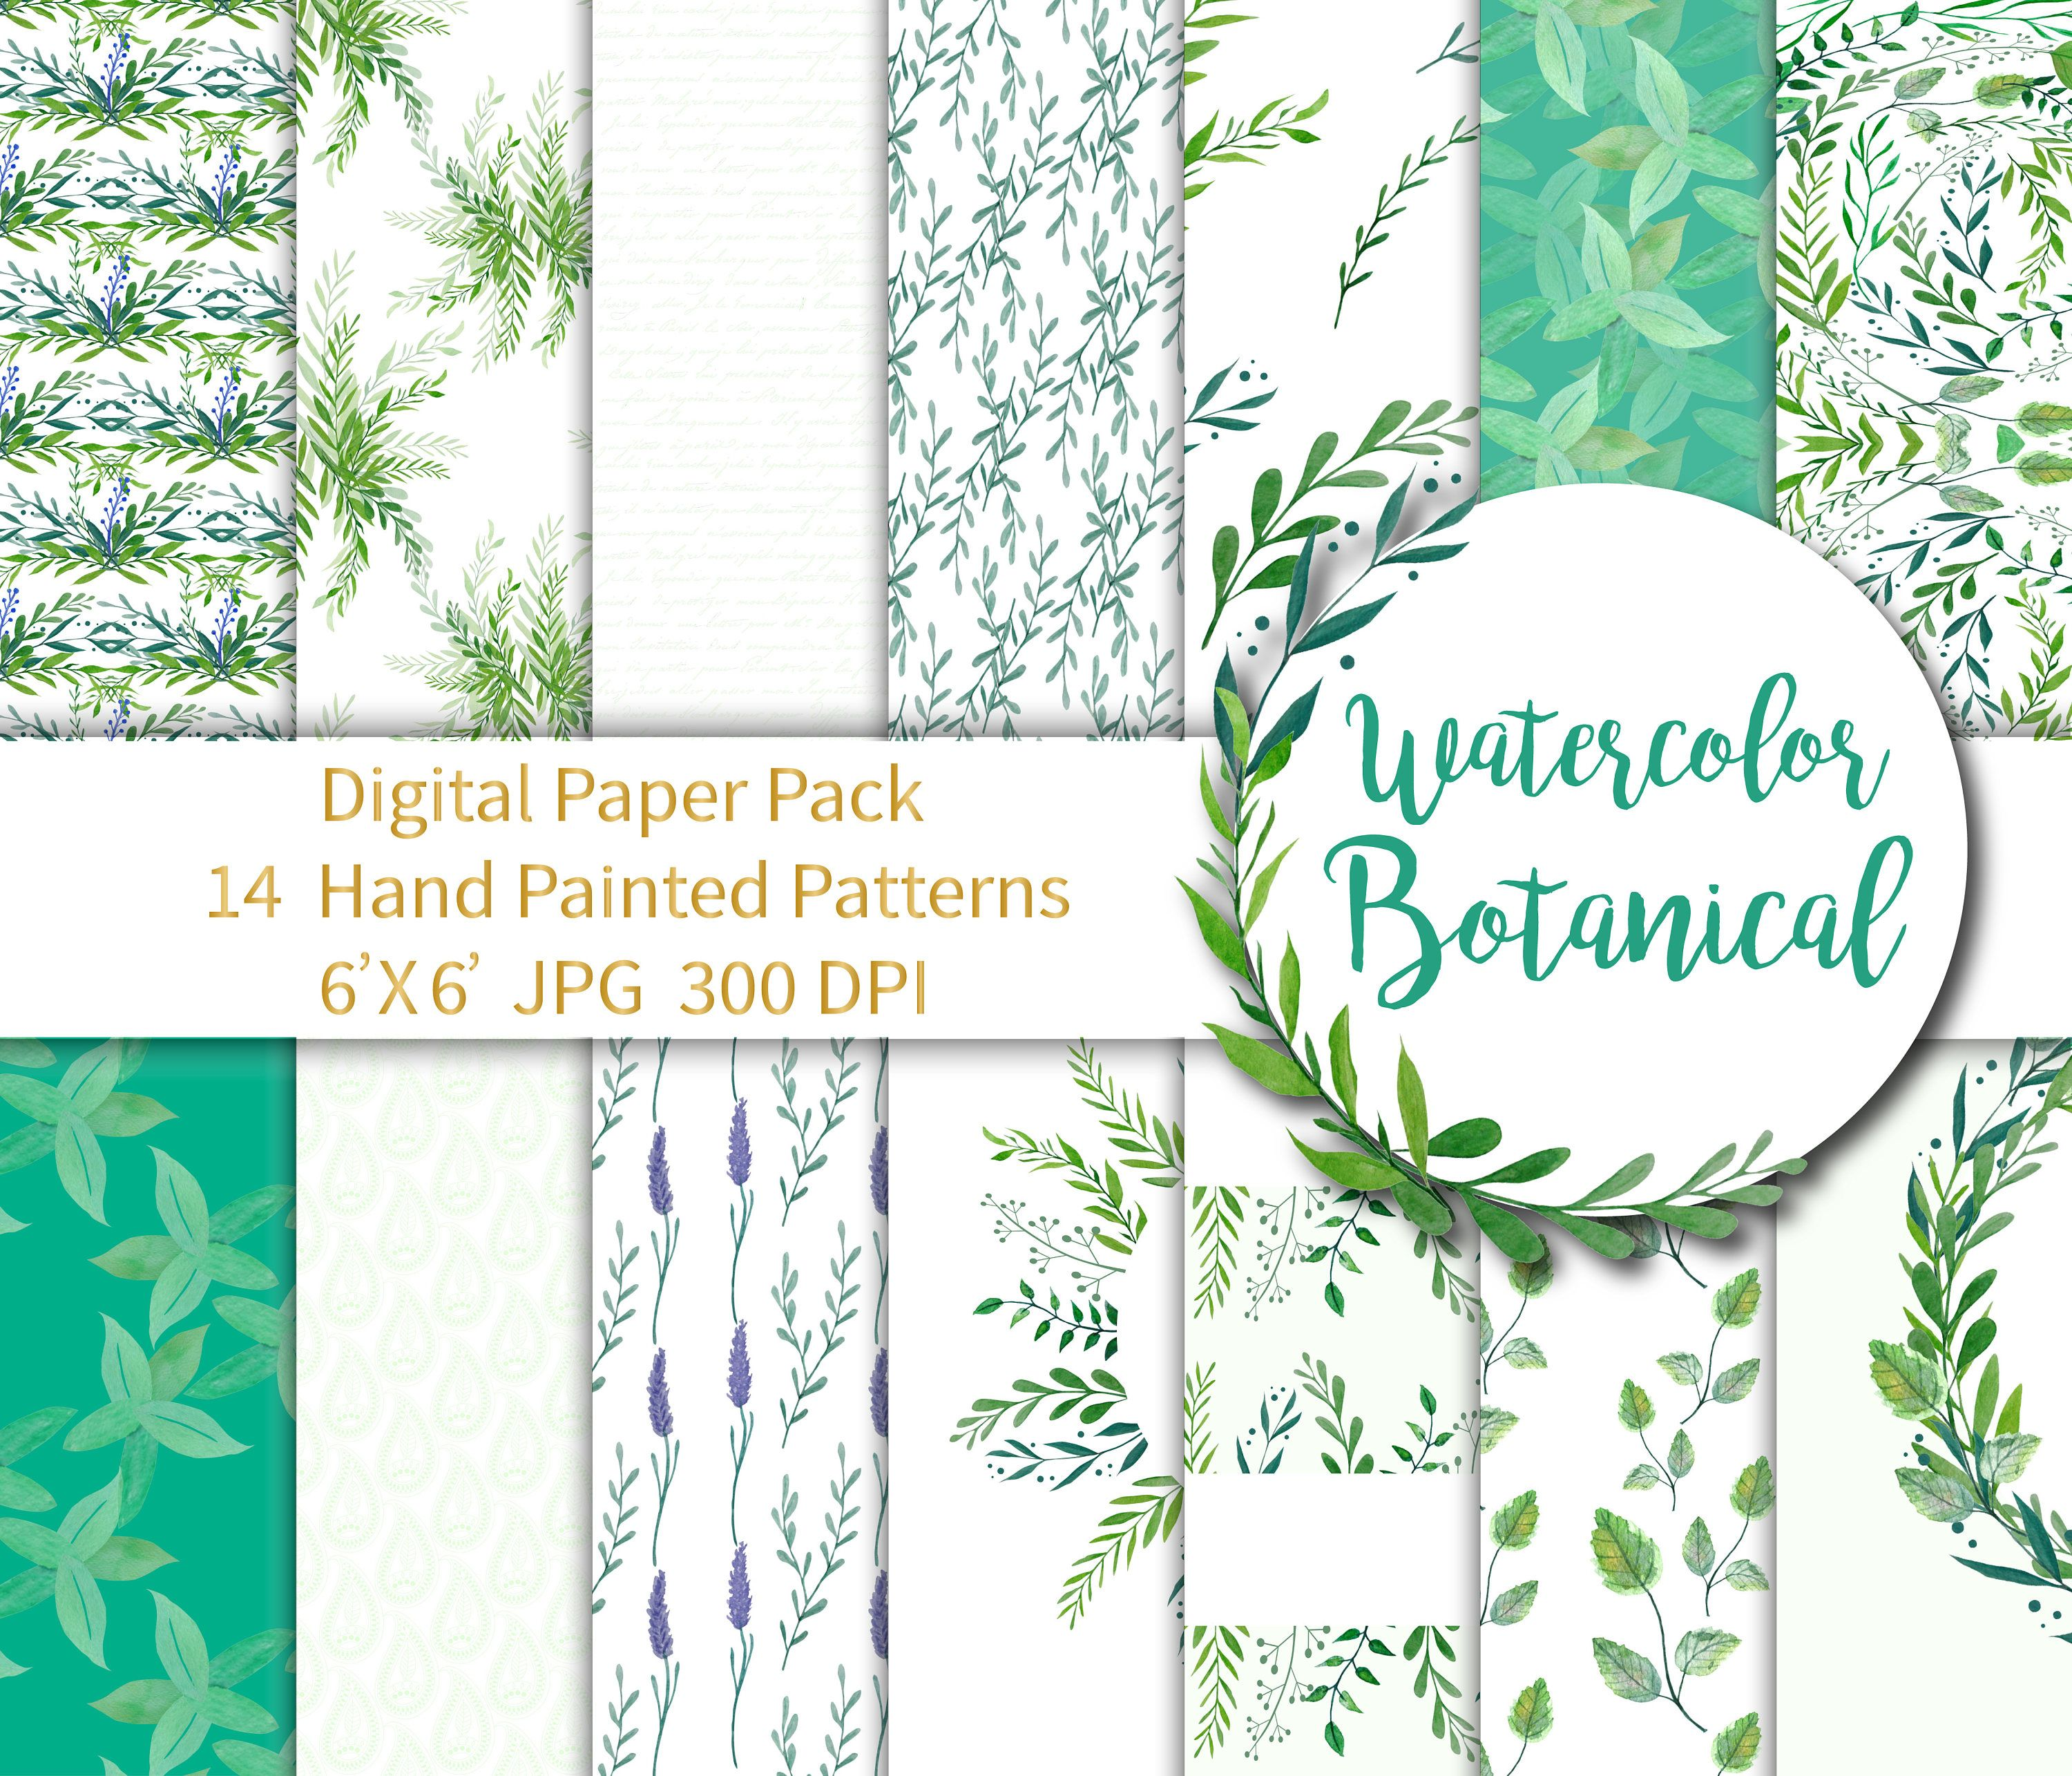 Herbal Paper Pack, Botanical Digital Herbal Digital, Green Wedding Paper, Botanical Paper Greenery, Watercolor Paper Seamless Pattern 6X6 by annakristal on Etsy